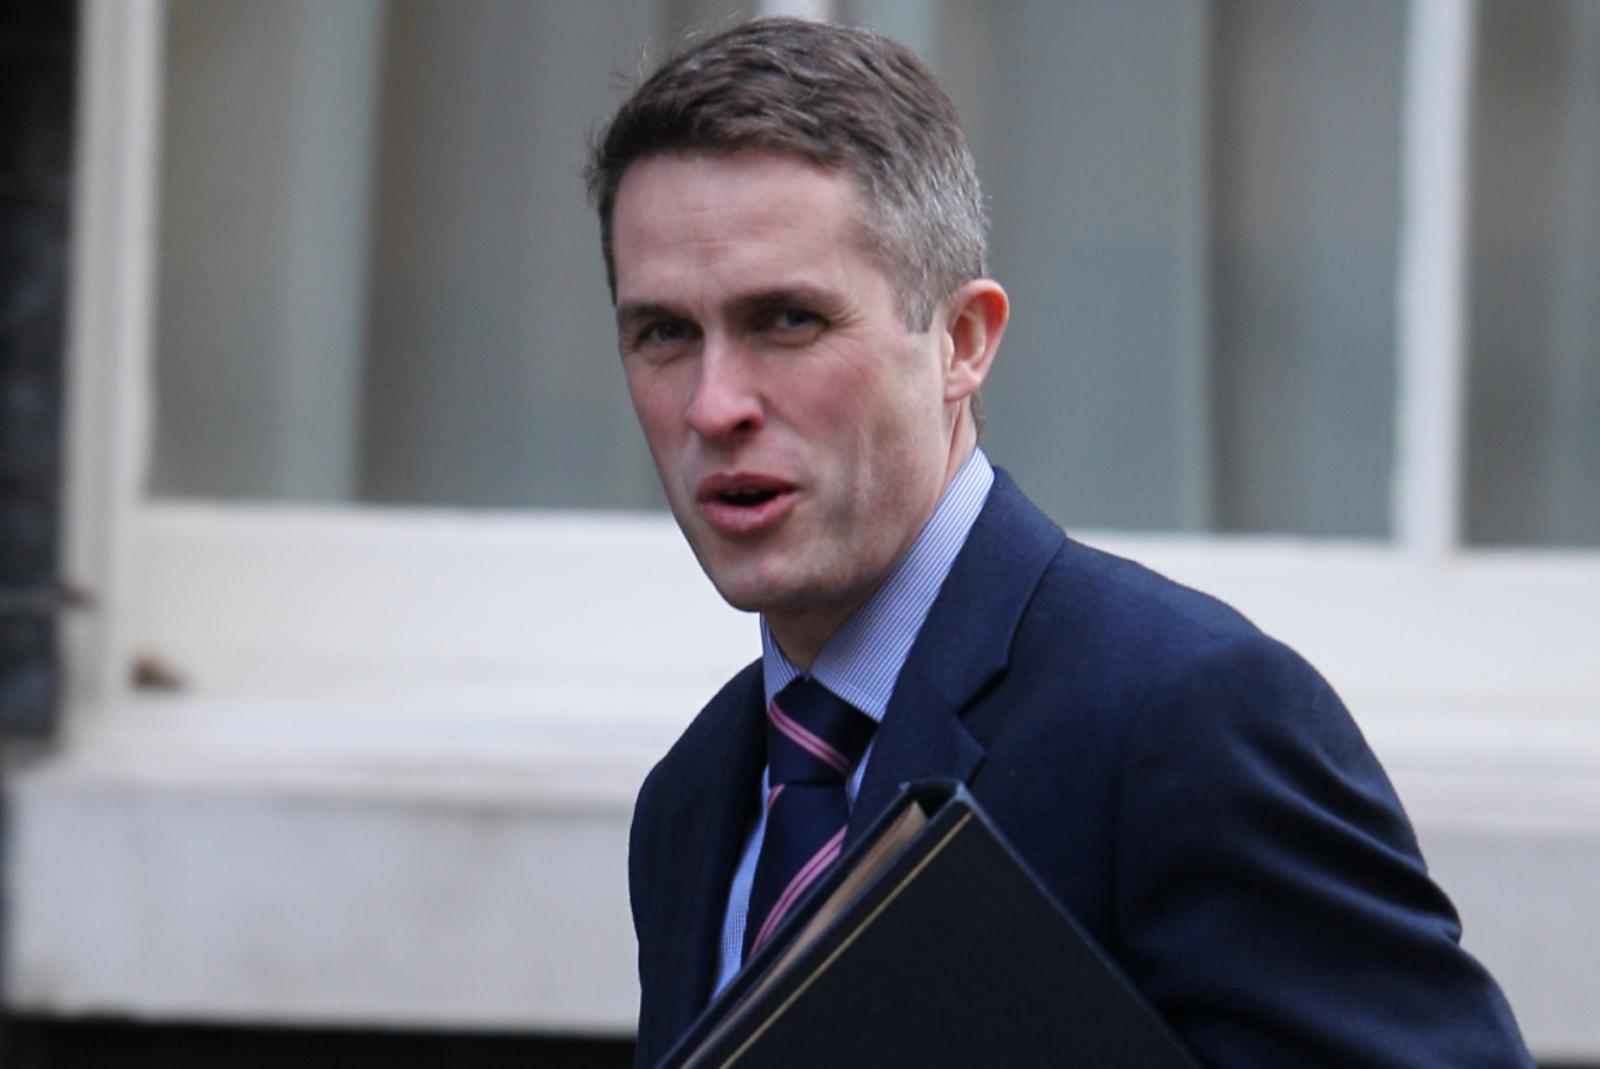 Putin pissing himself as Gavin Williamson shuts up and goes away